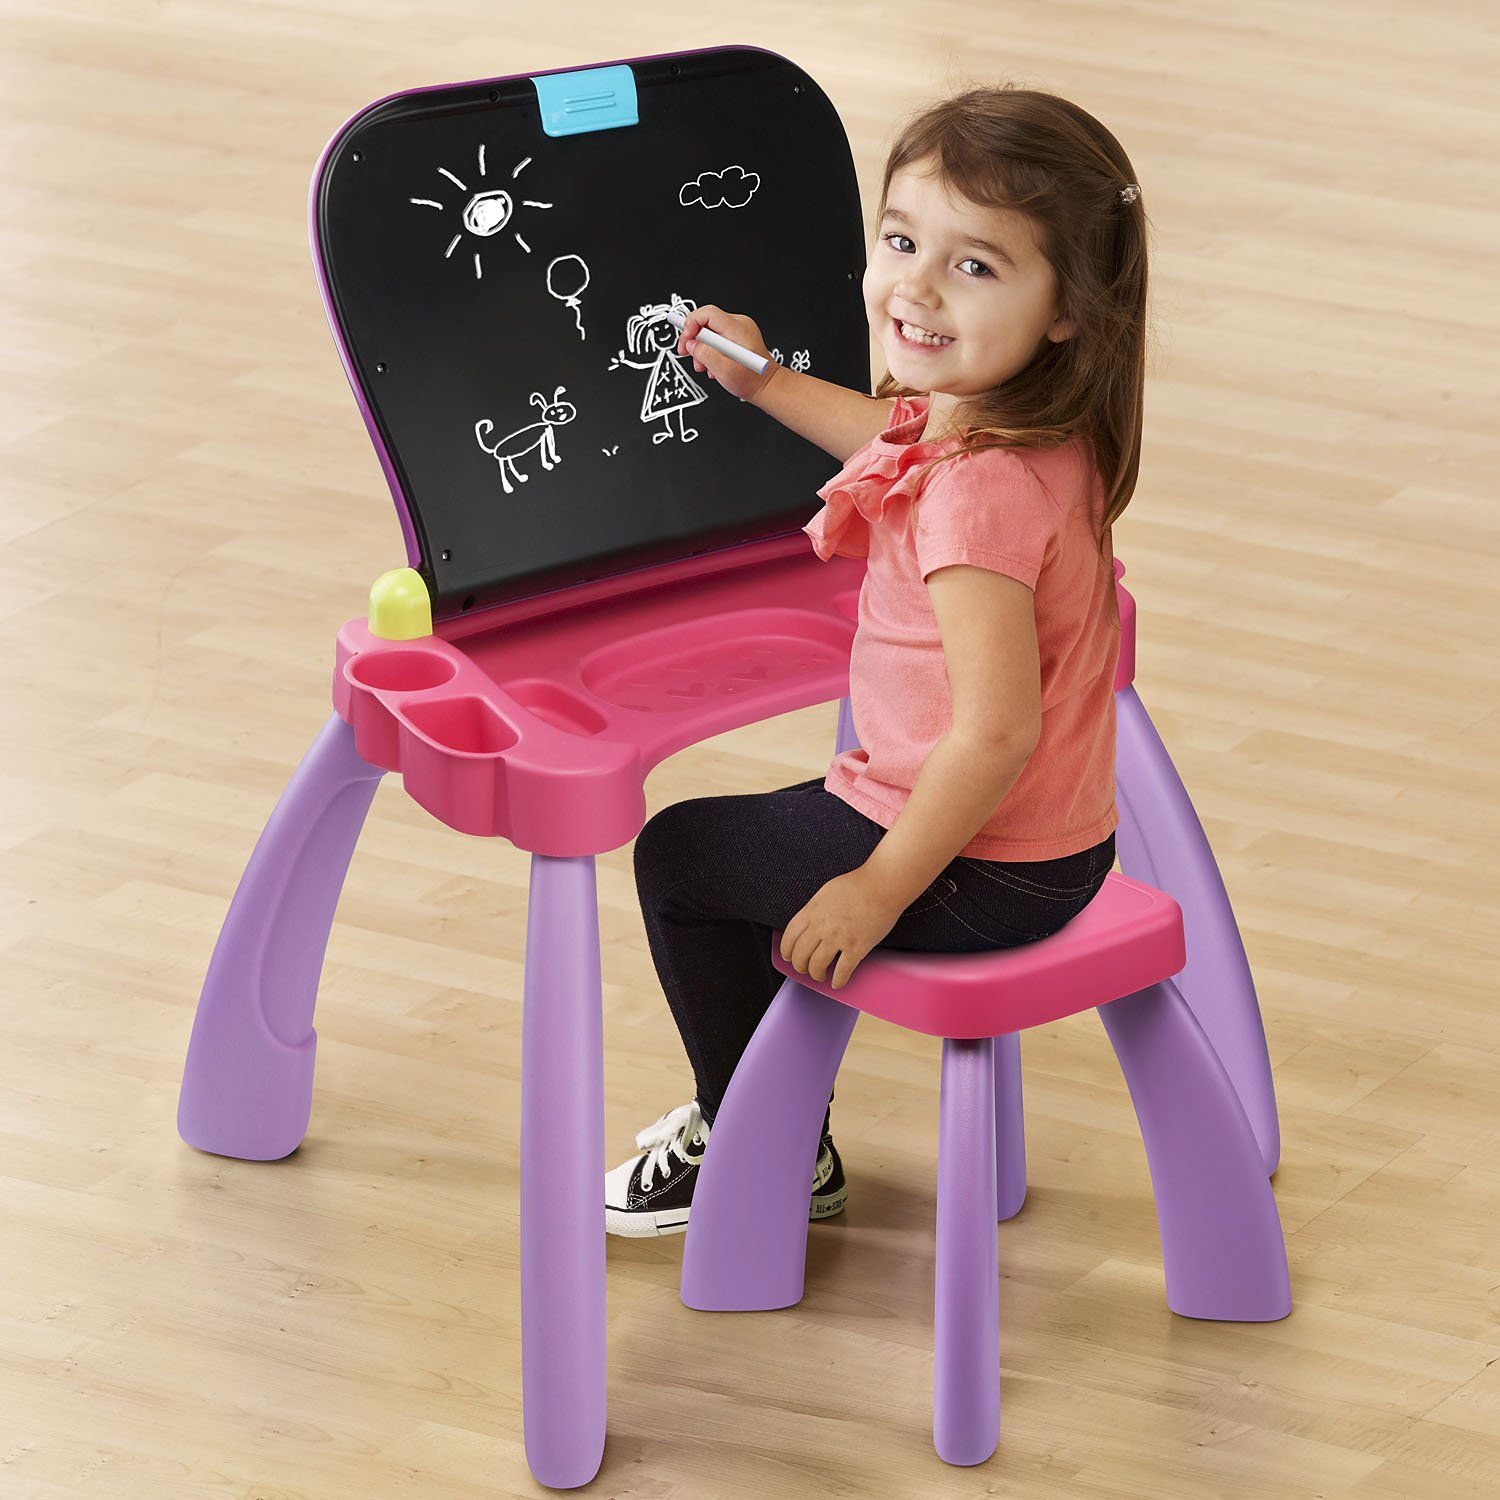 VTech Touch and Learn Activity Desk, Purple by VTech (Image #5)